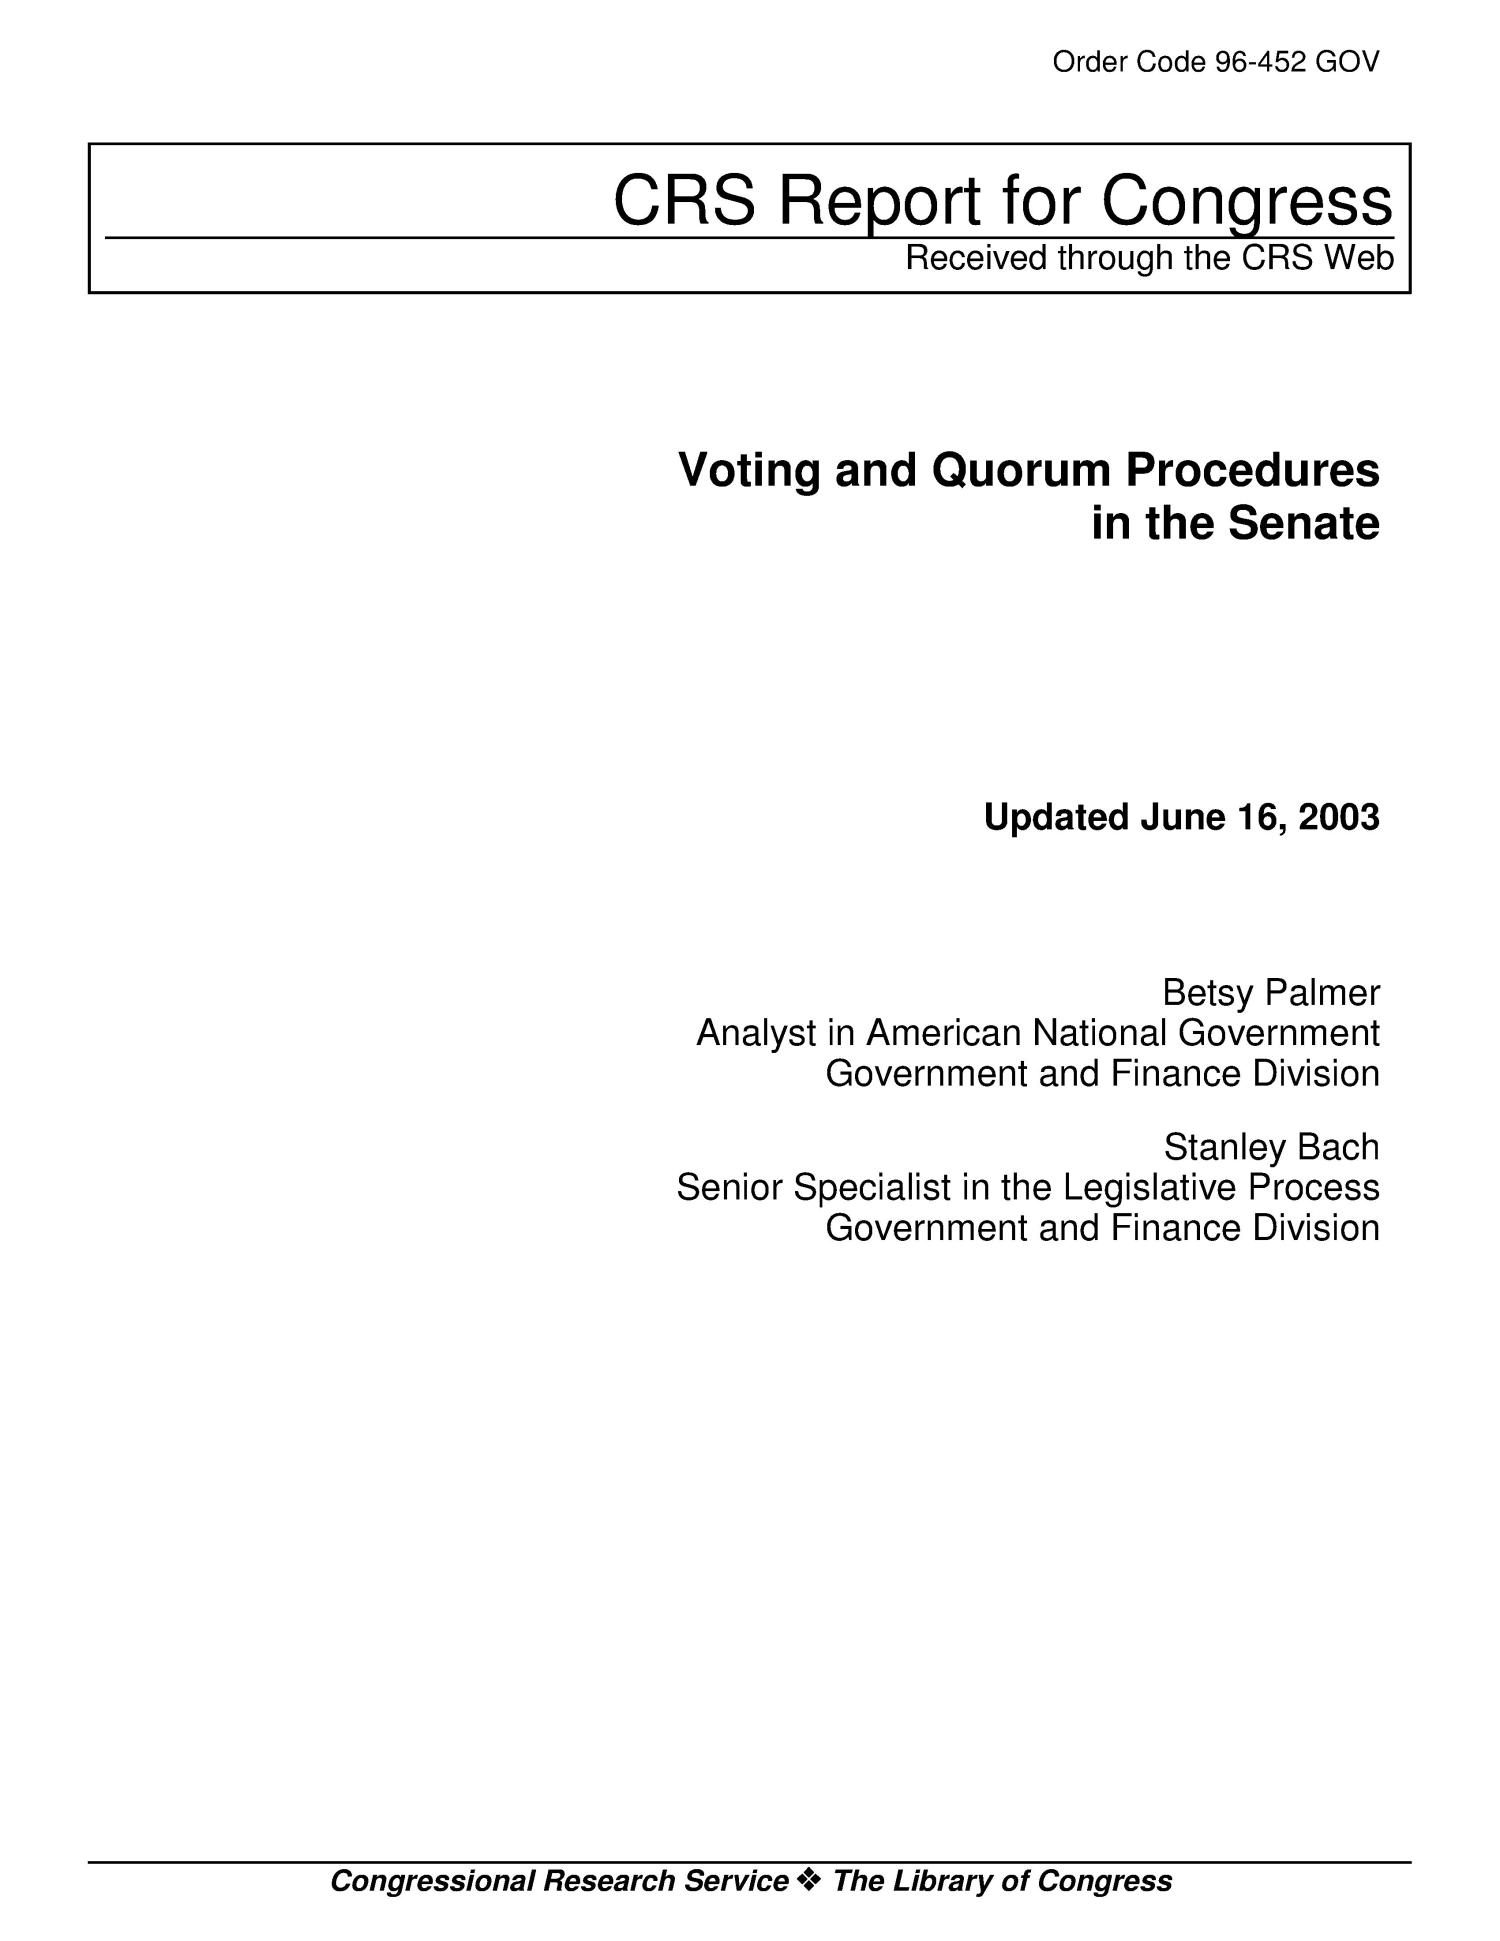 Voting and Quorum Procedures in the Senate                                                                                                      [Sequence #]: 1 of 13